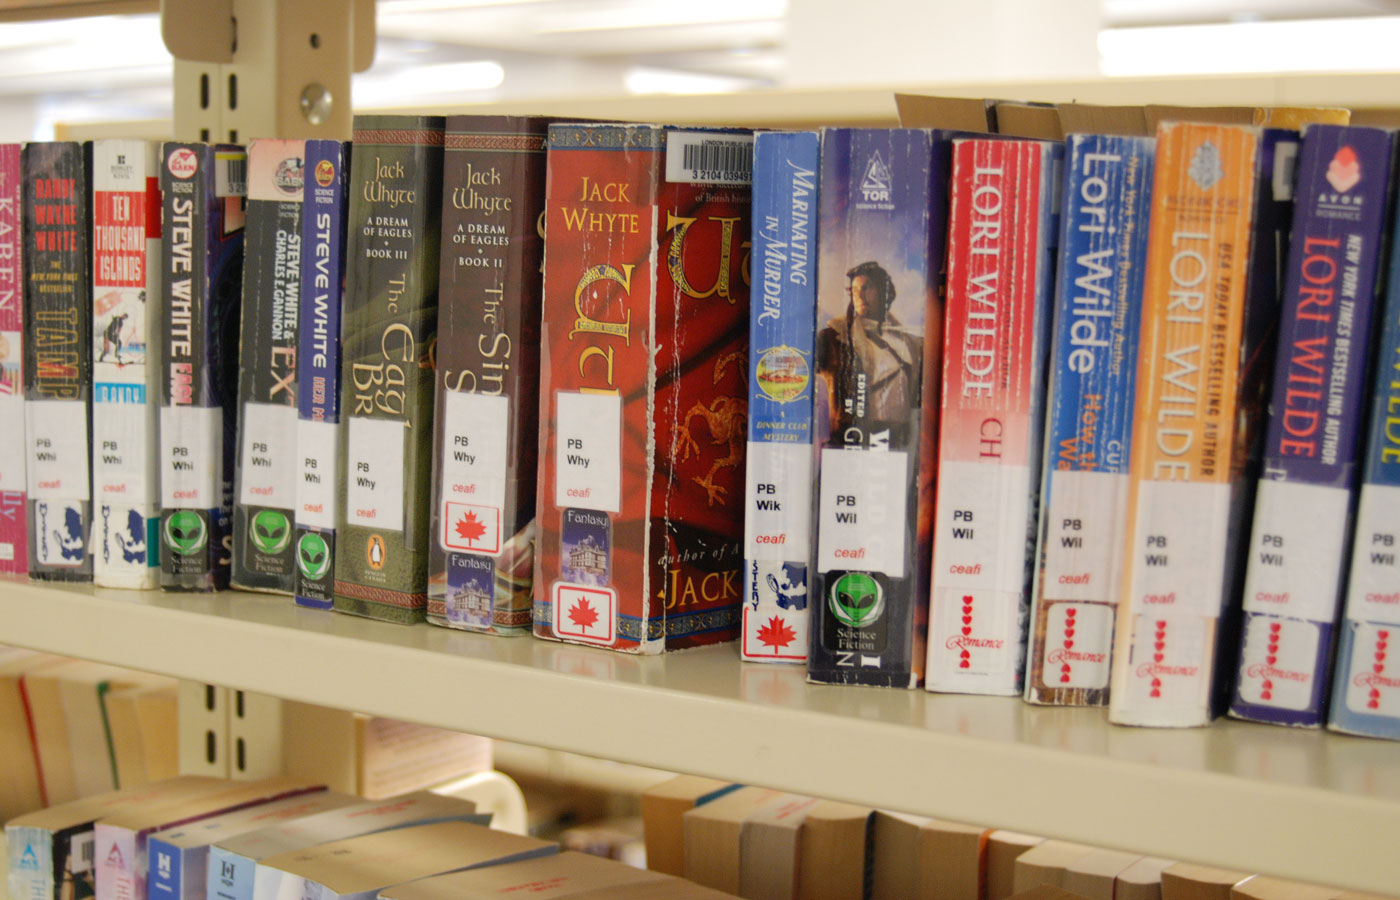 A selection of books from the London Public Library